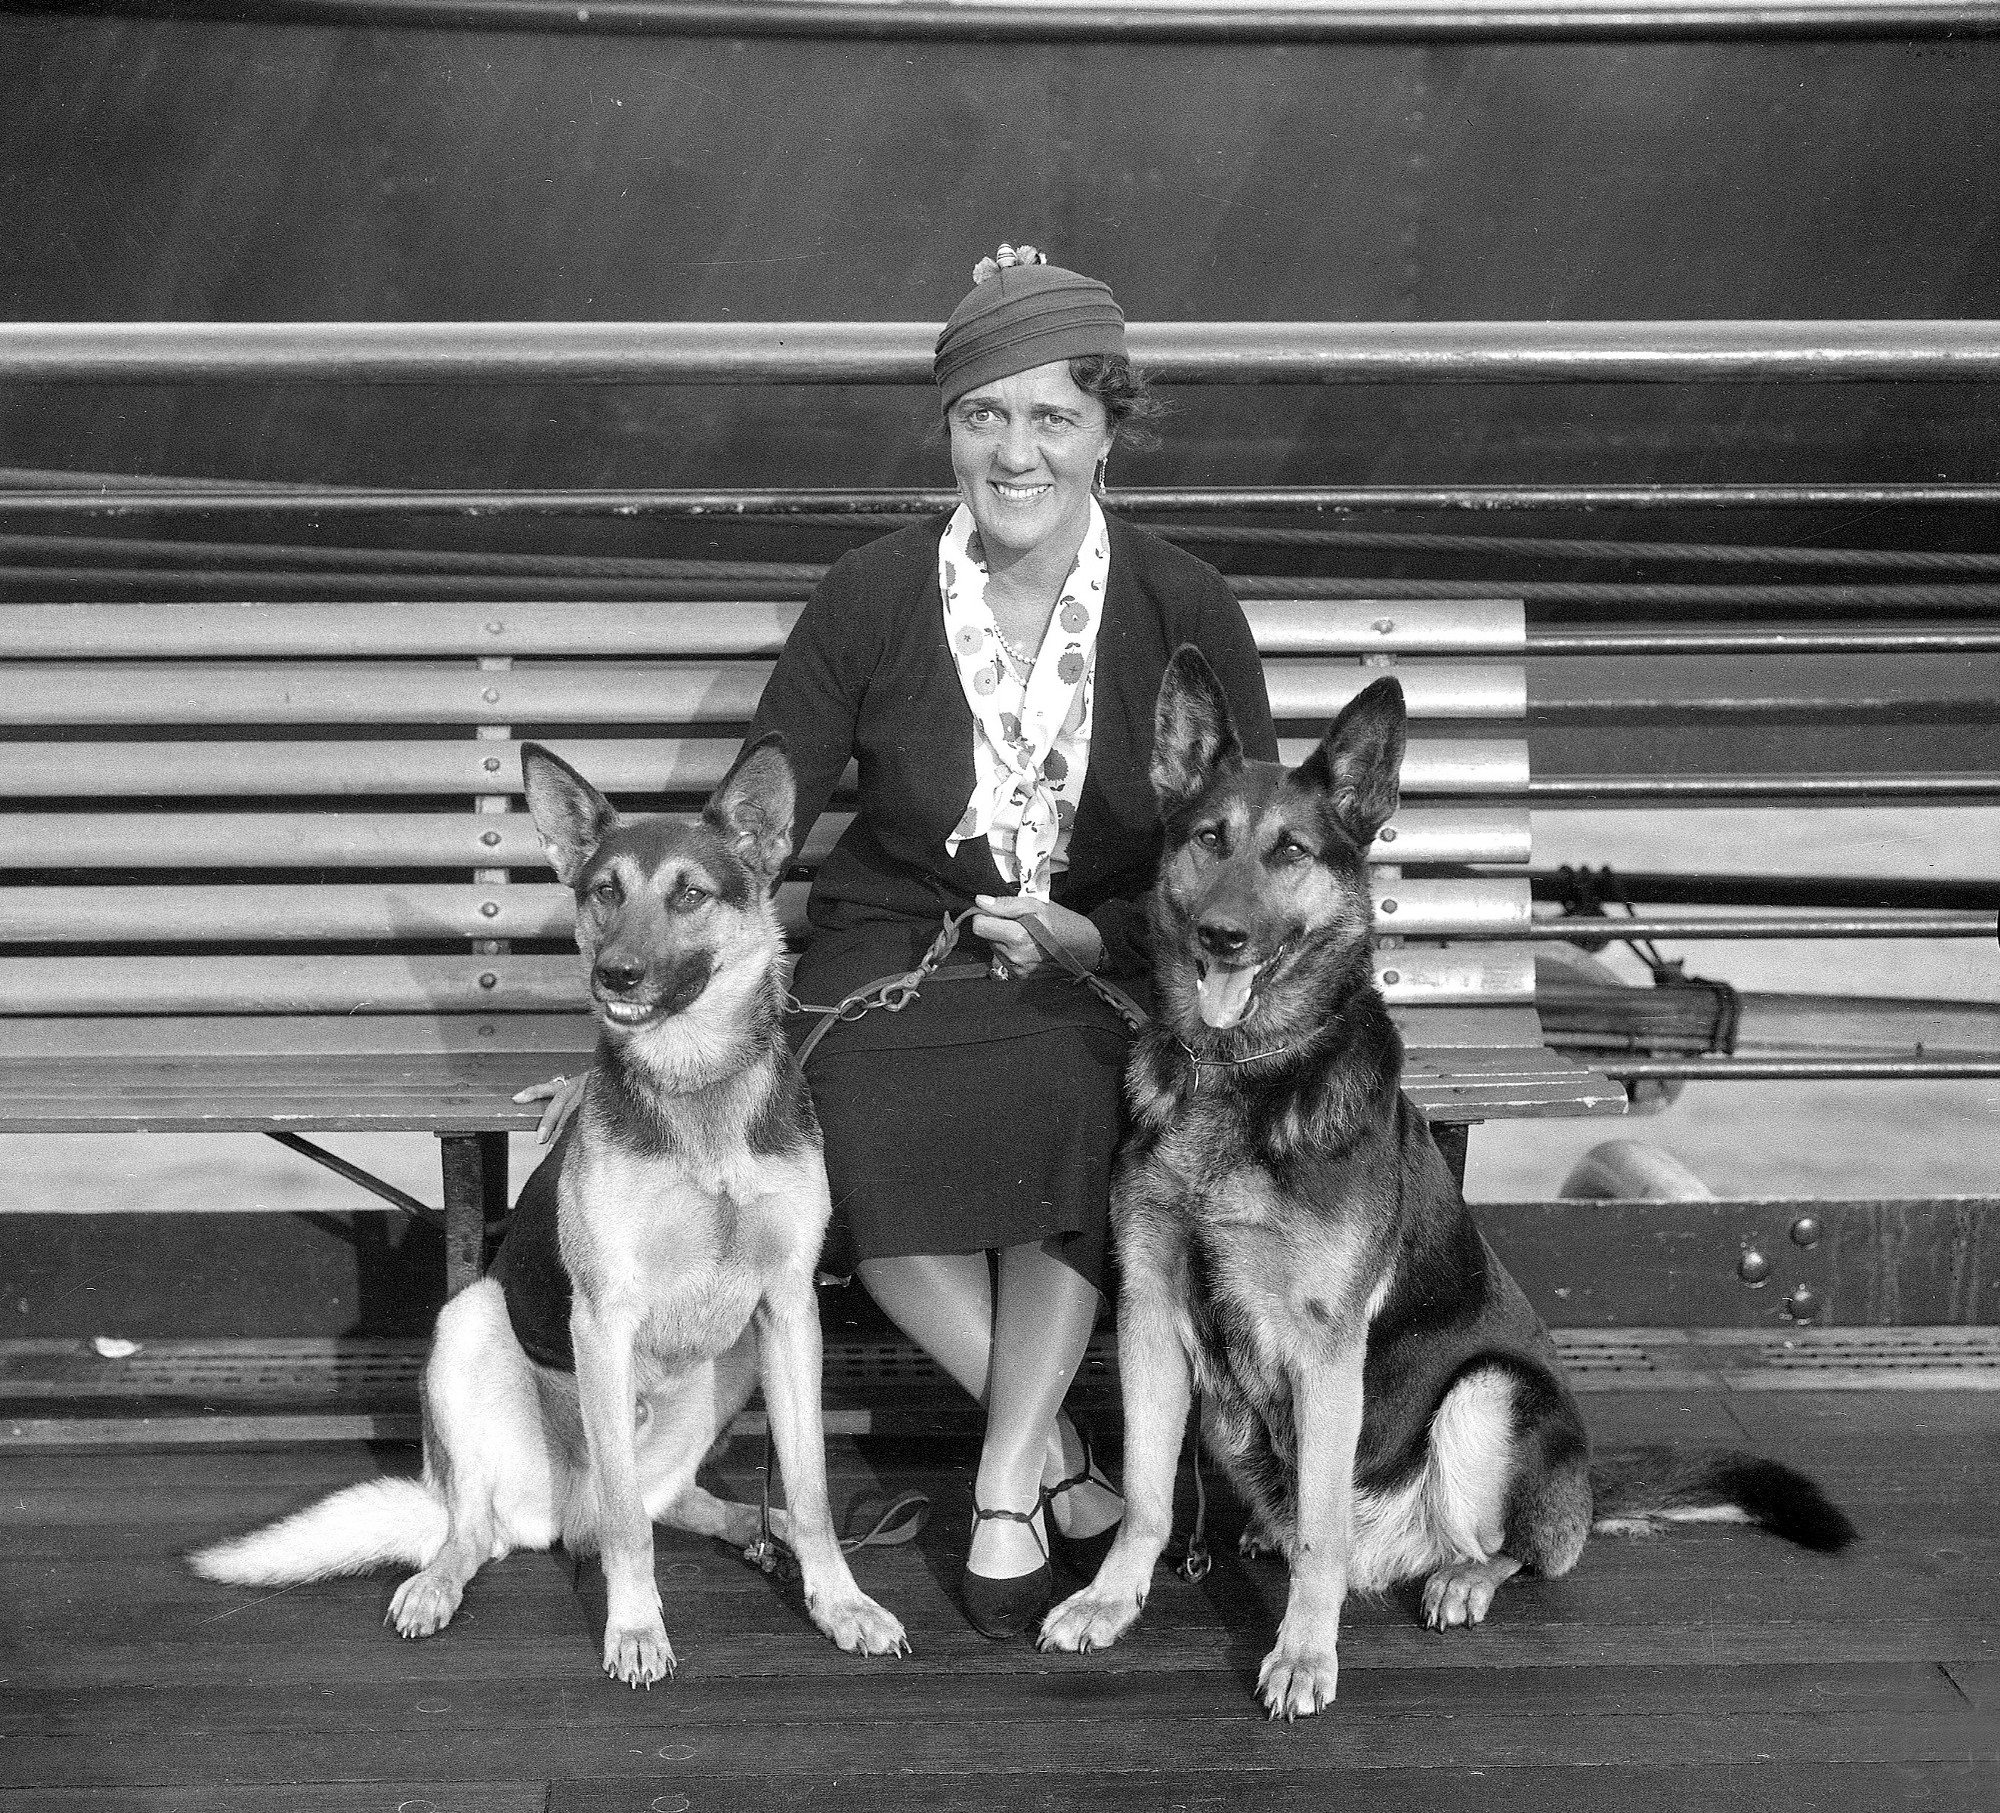 This woman brought guide dogs to America, and aid to thousands of blind people